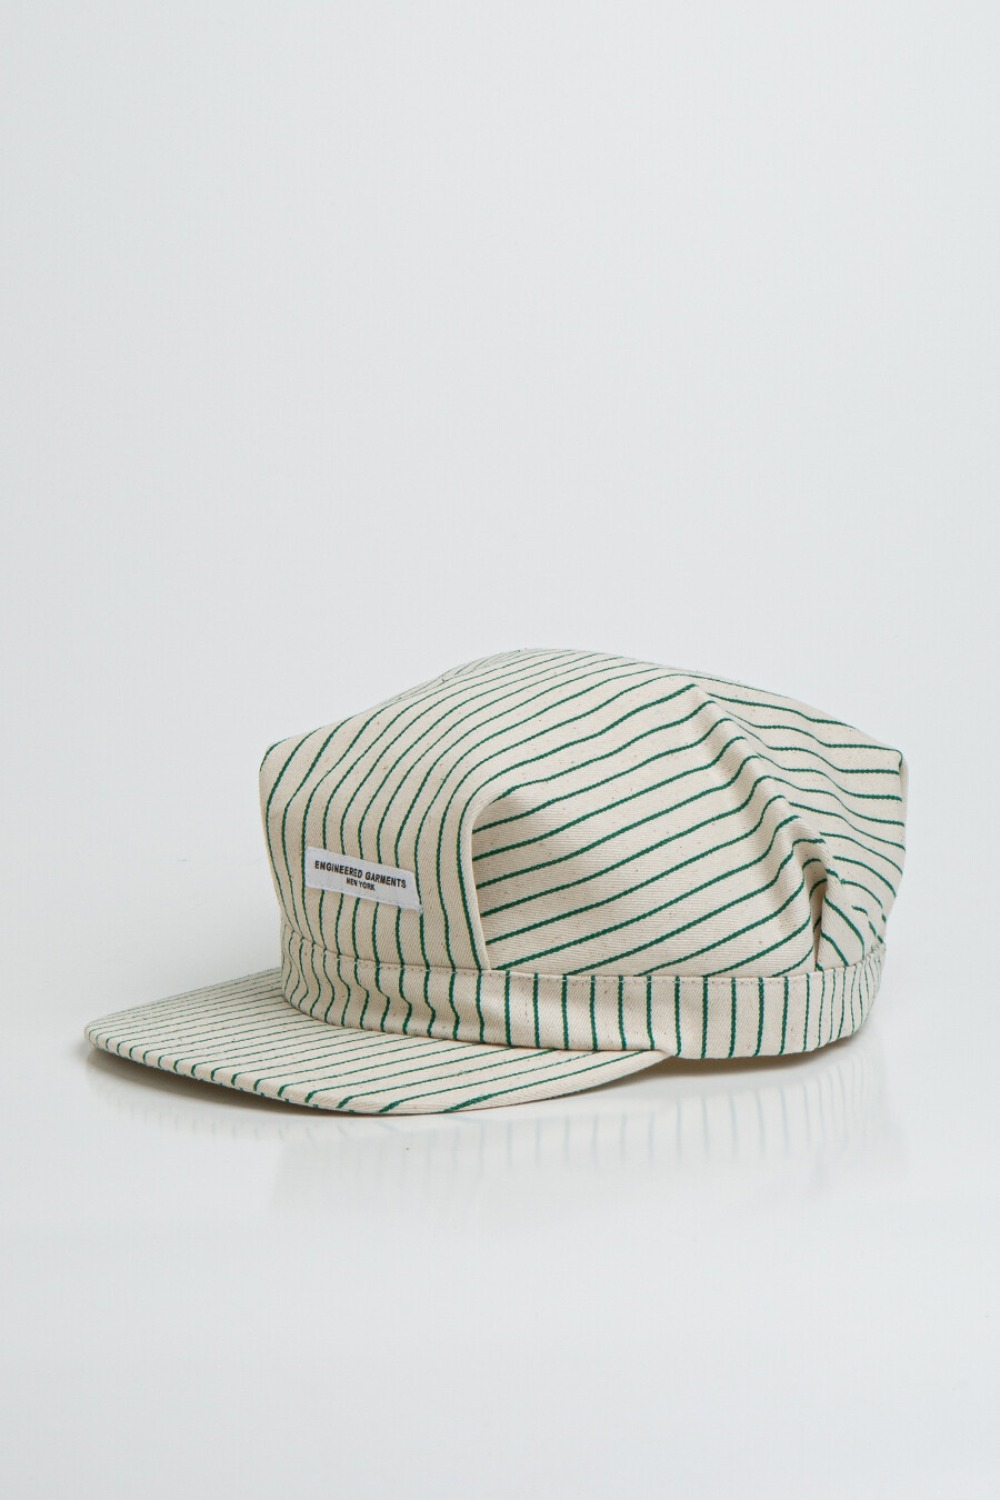 RAILROAD CAP NATURAL GREEN UNIFORM STRIPE